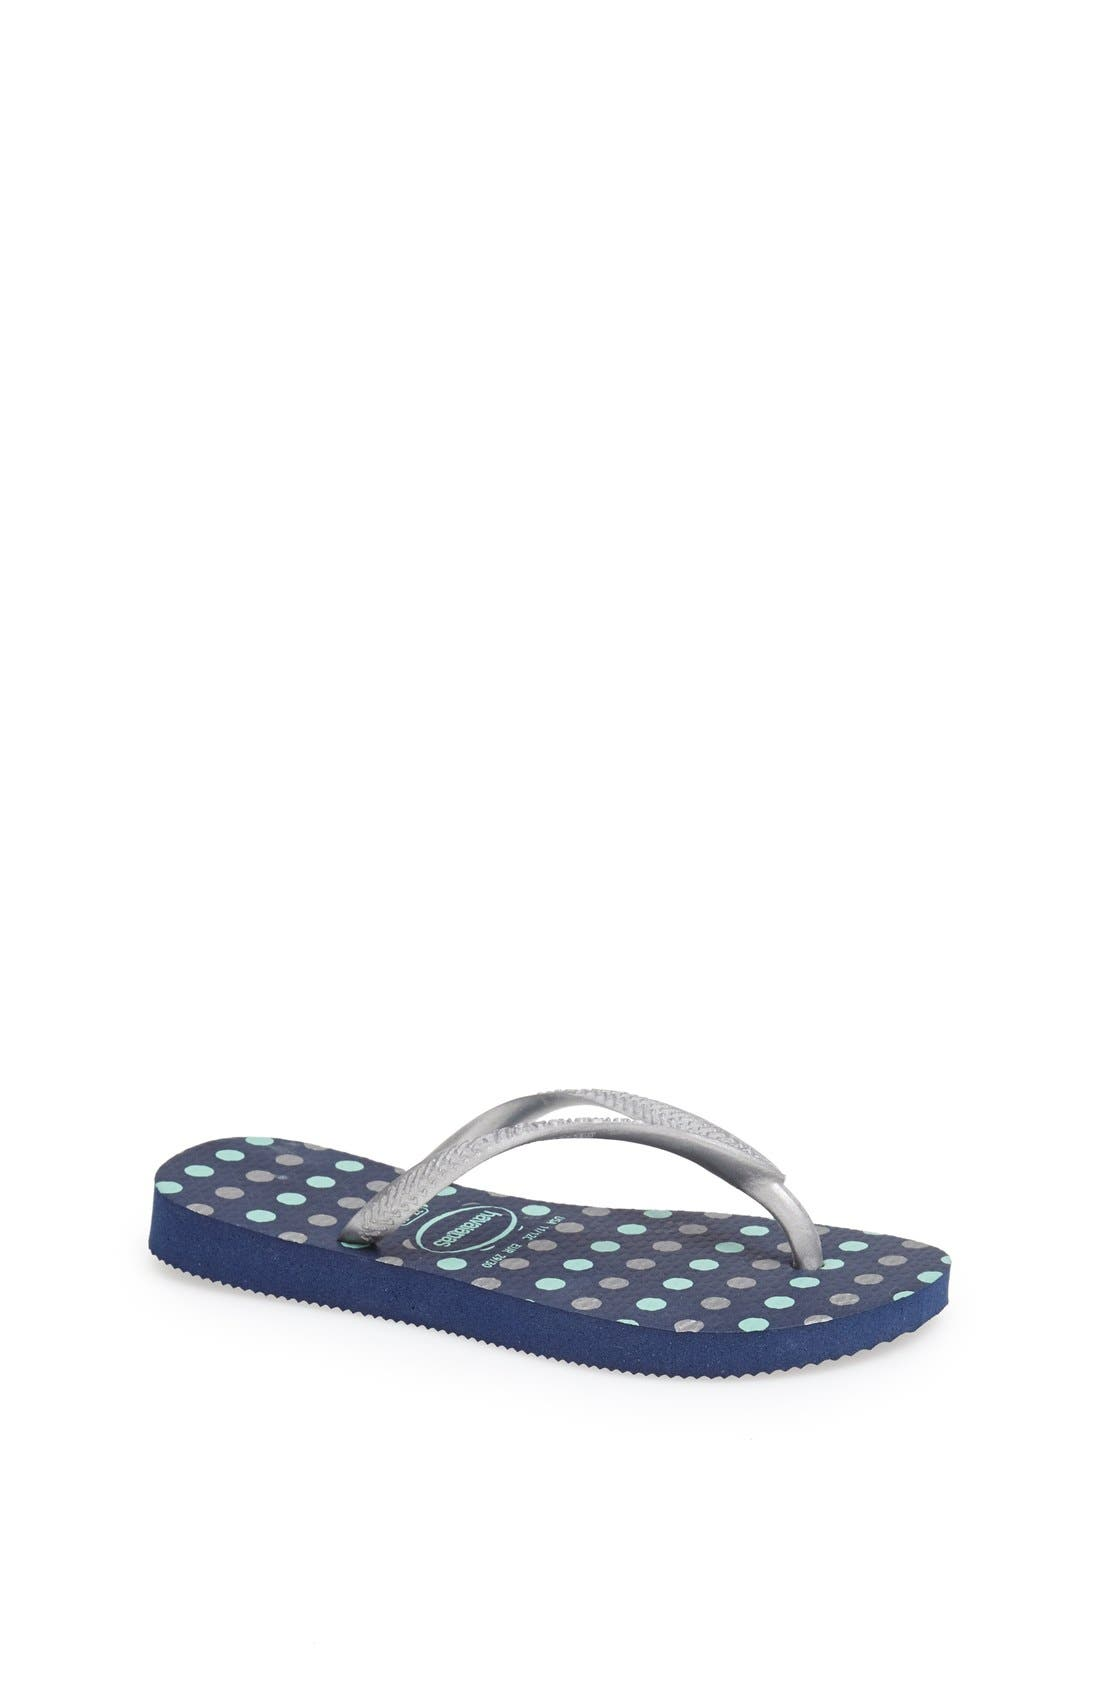 Main Image - Havaianas 'Slim Fresh' Flip Flop (Toddler & Little Kid)